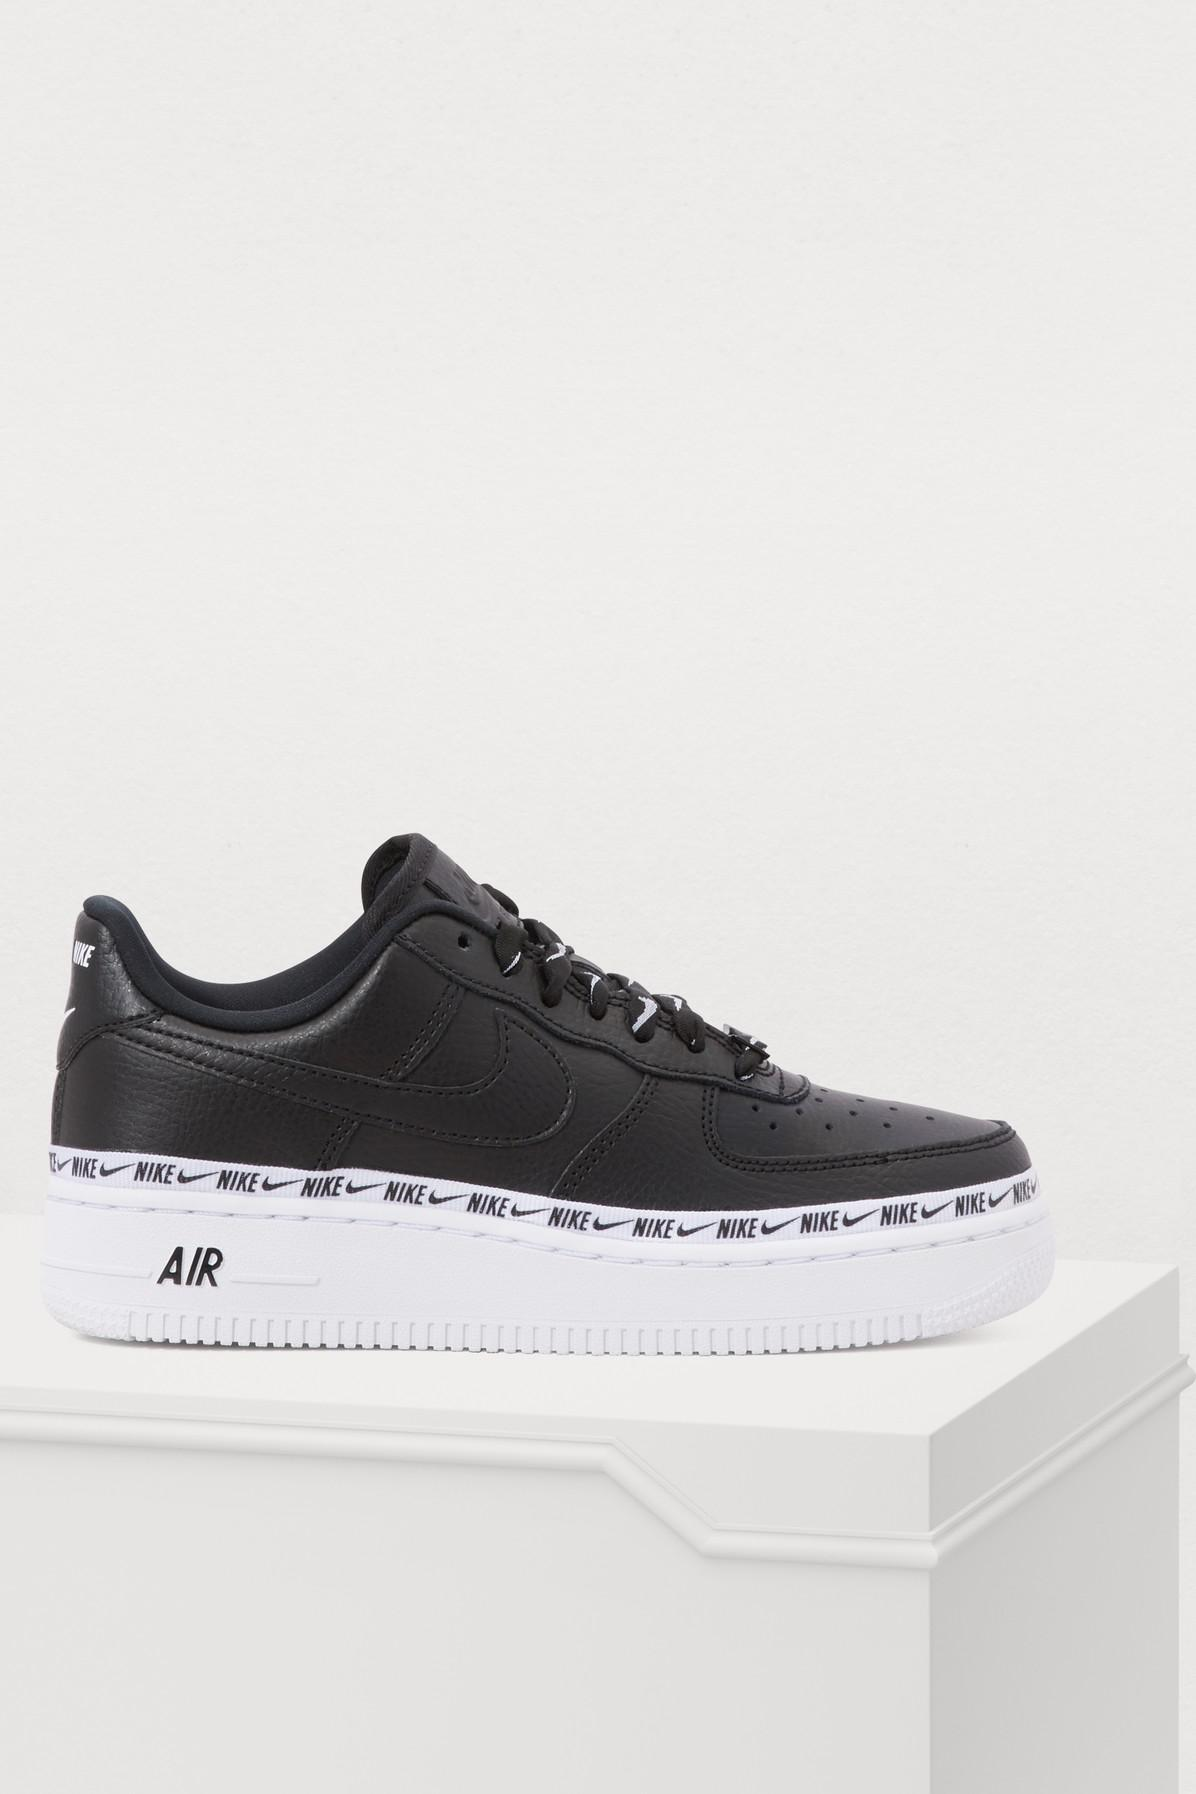 new style b801d 726a1 Nike Air Force 1 07 Se Prm Sneakers in Black - Lyst